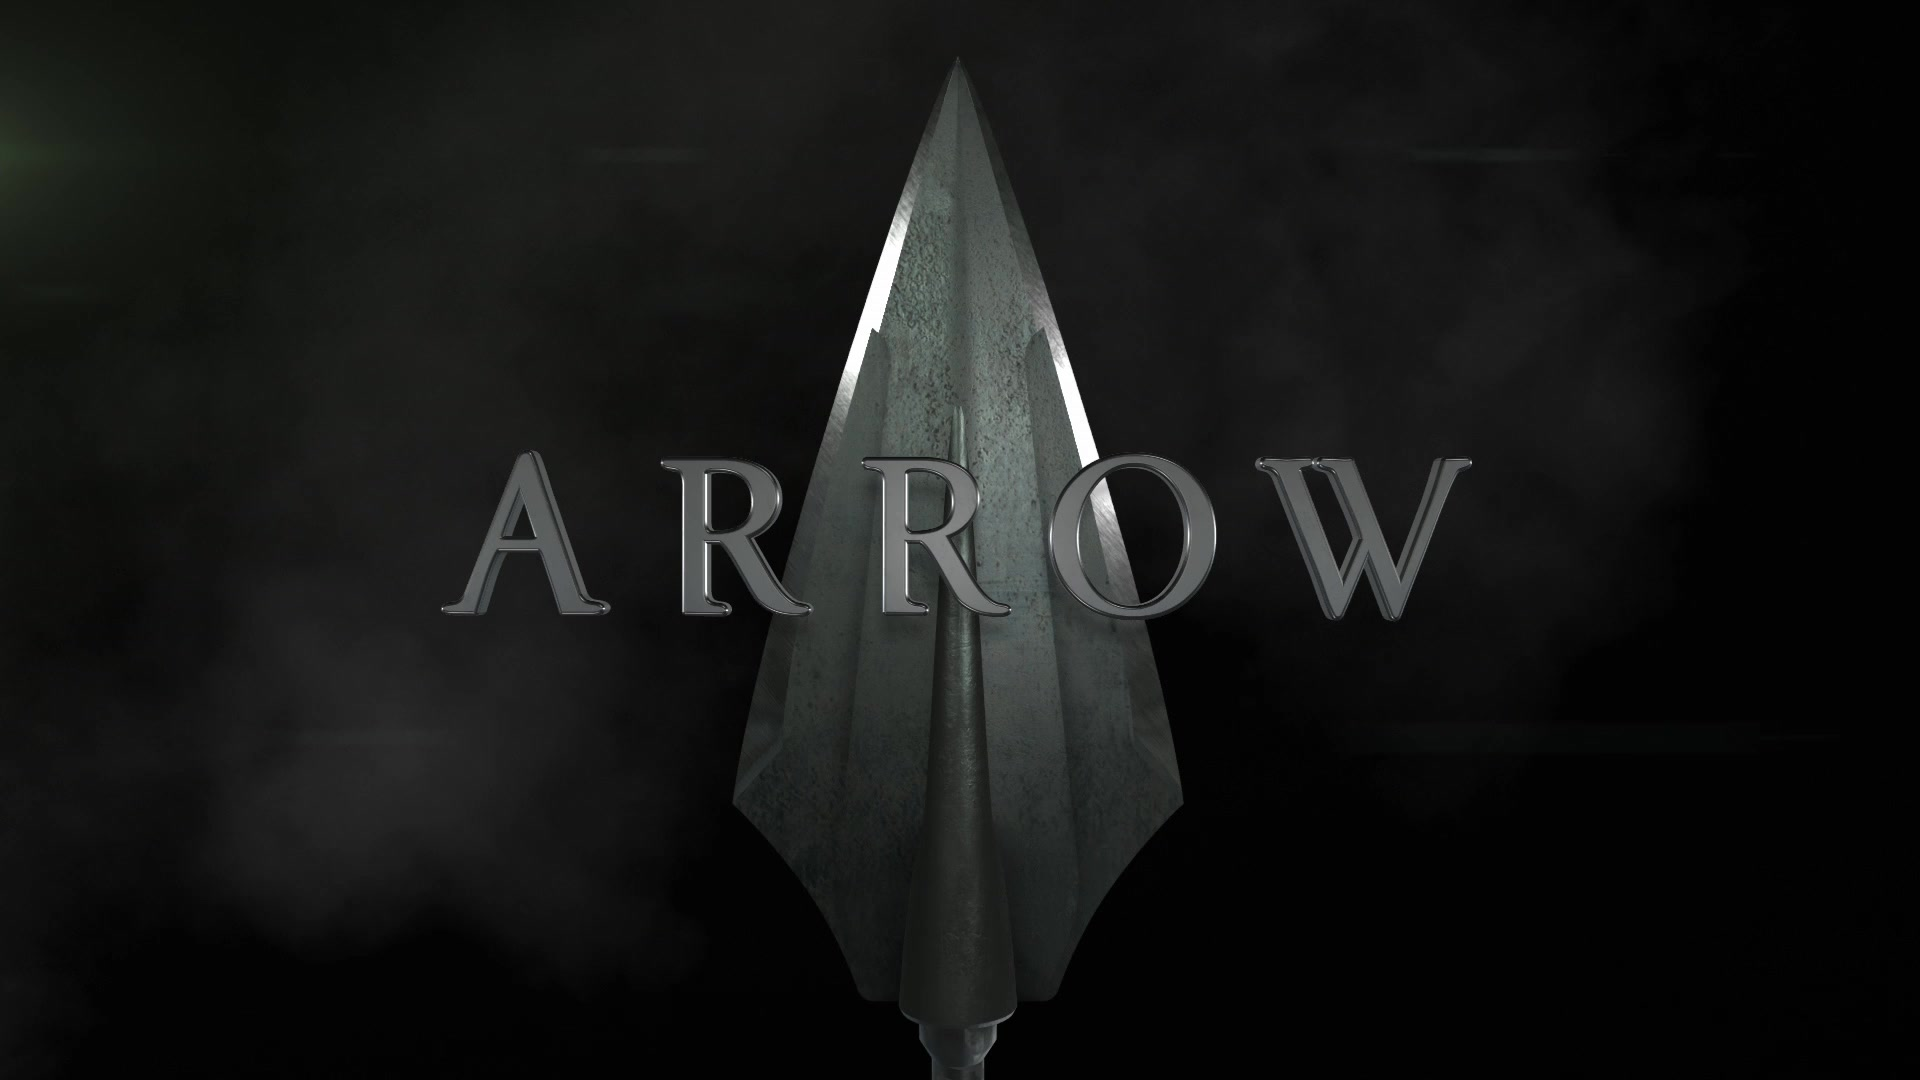 Arrow (TV Series) Episode: Living Proof